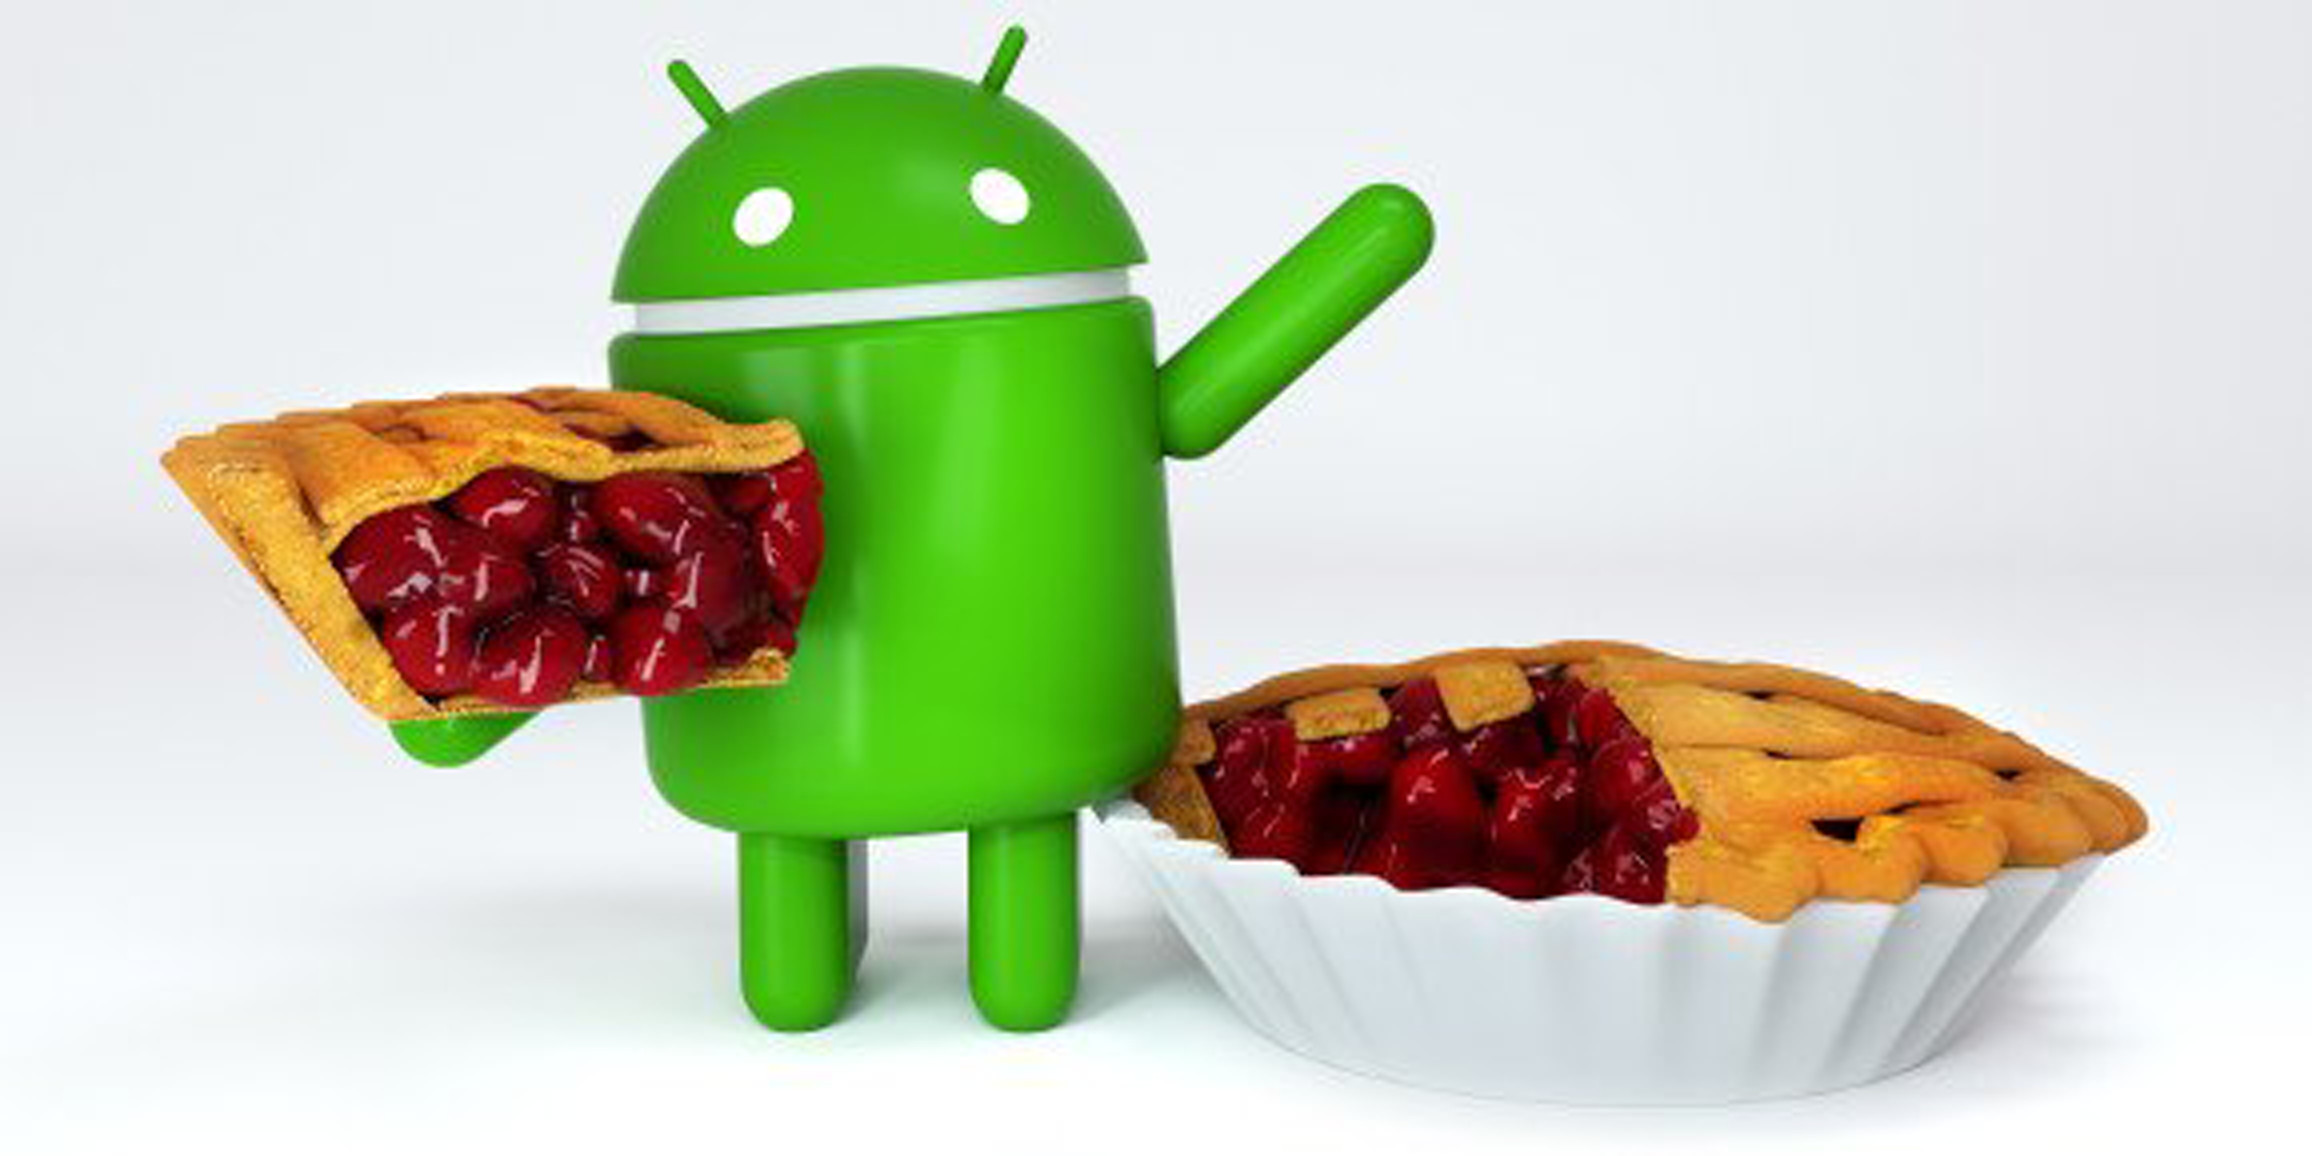 Android 9.0 PのコードネームはPie(パイ)に決定!